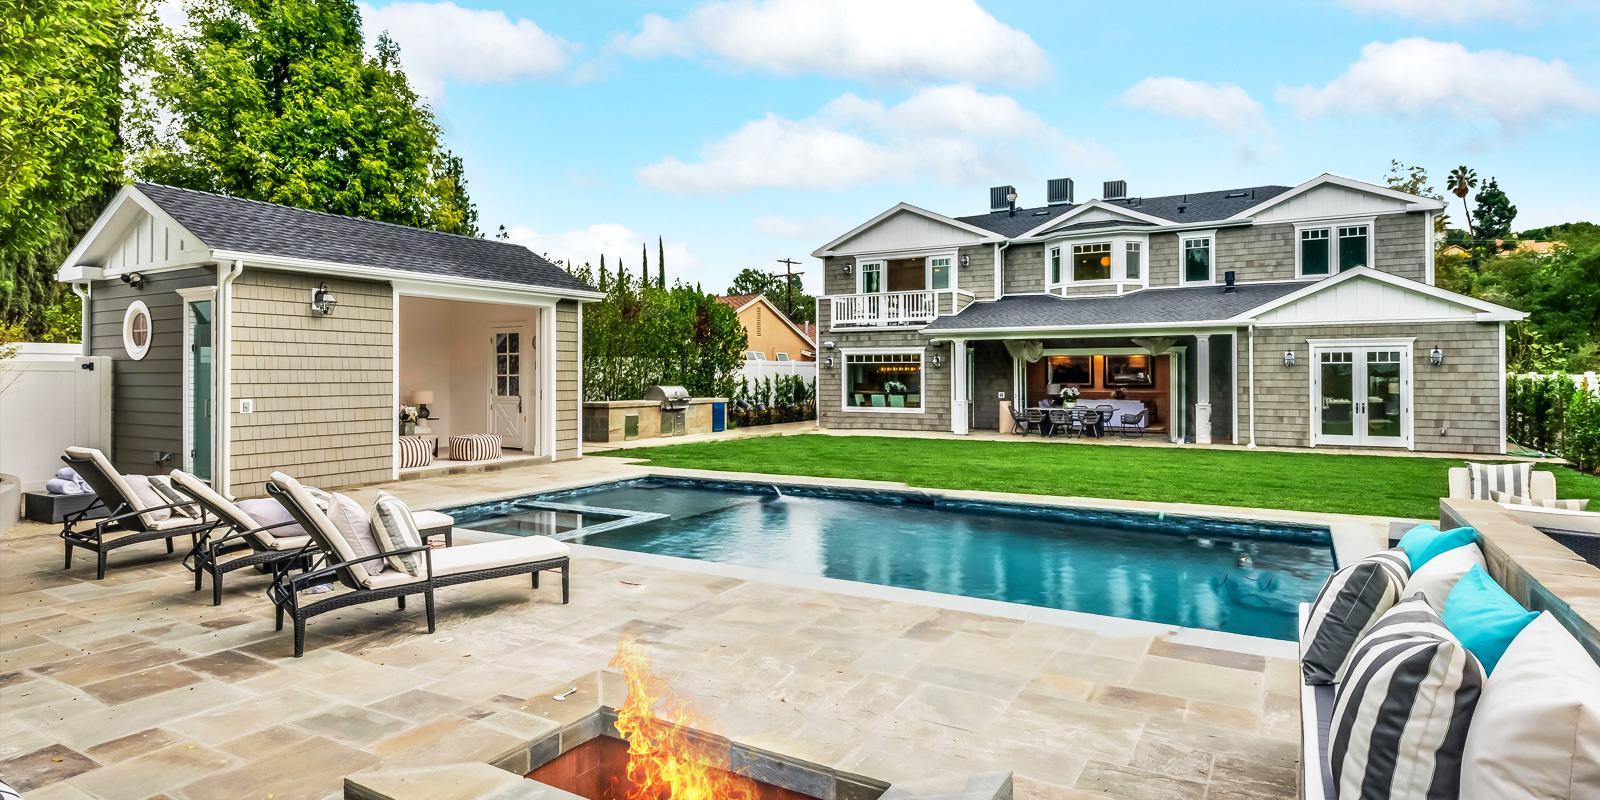 BALLINA DRIVE | ENCINO   An exquisite gated New Construction gem with expansive valley views! This luxury detailed home is a 6 bedrooms, 7.5 bath custom build.